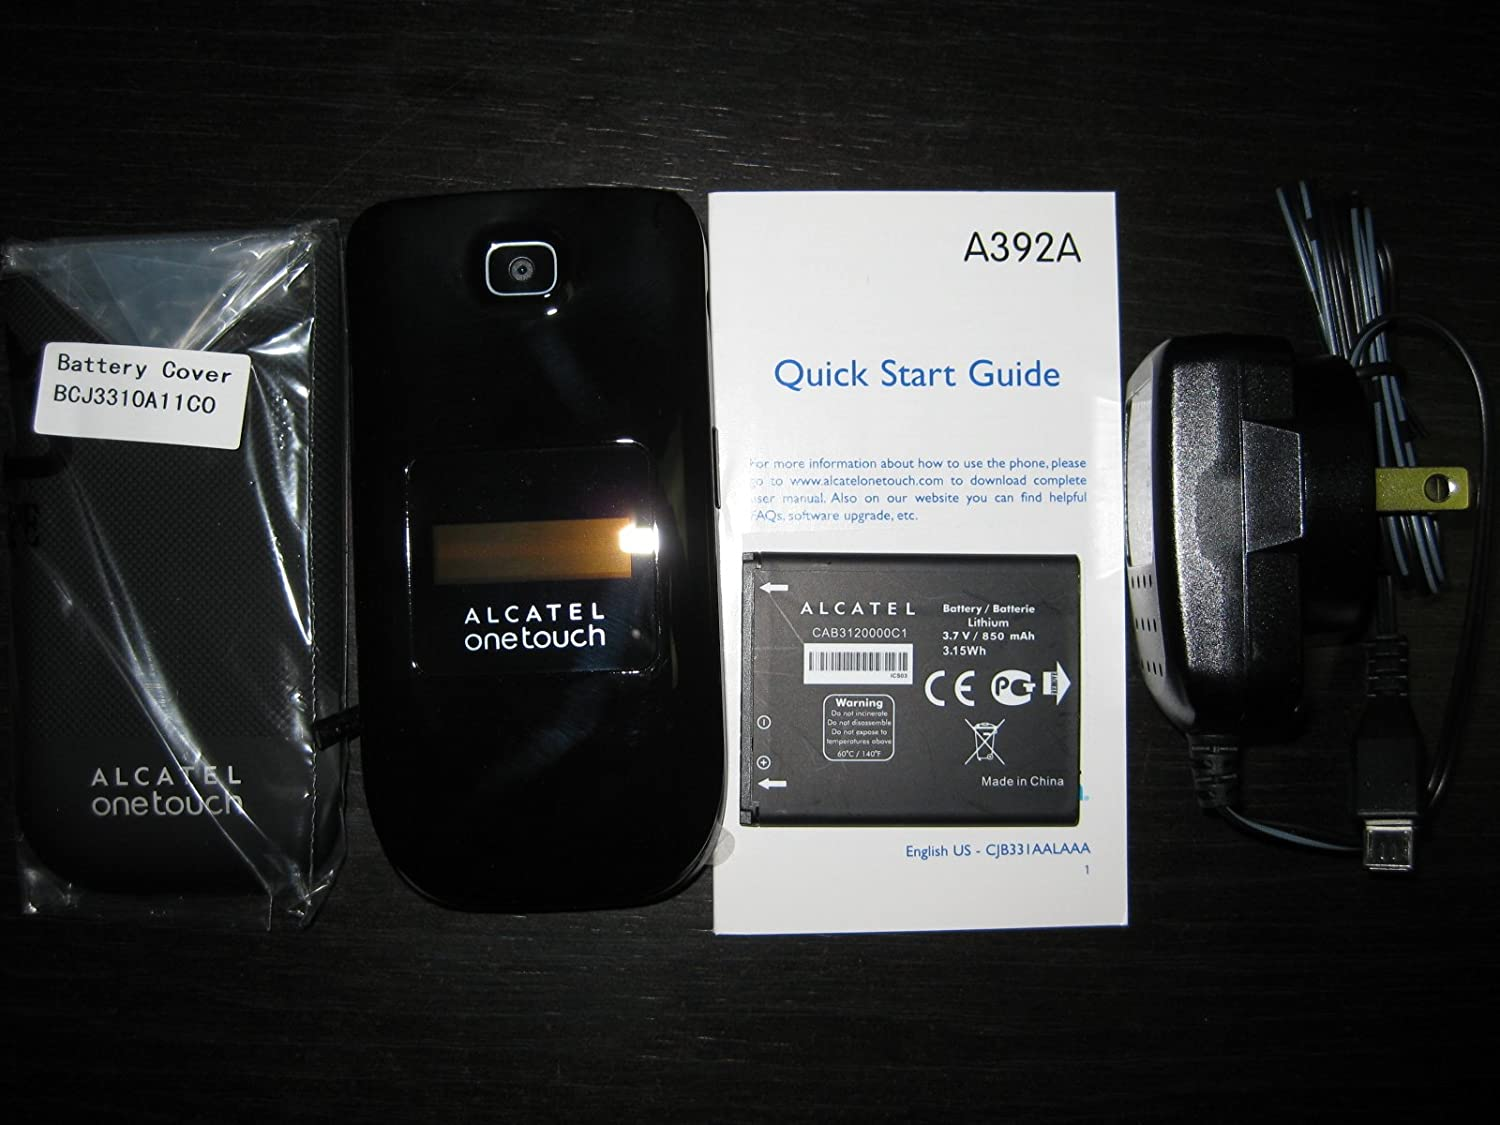 UNLOCKED Alcatel OneTouch A392A Quad Band Flip Cell Phone, Camera, Bluetooth